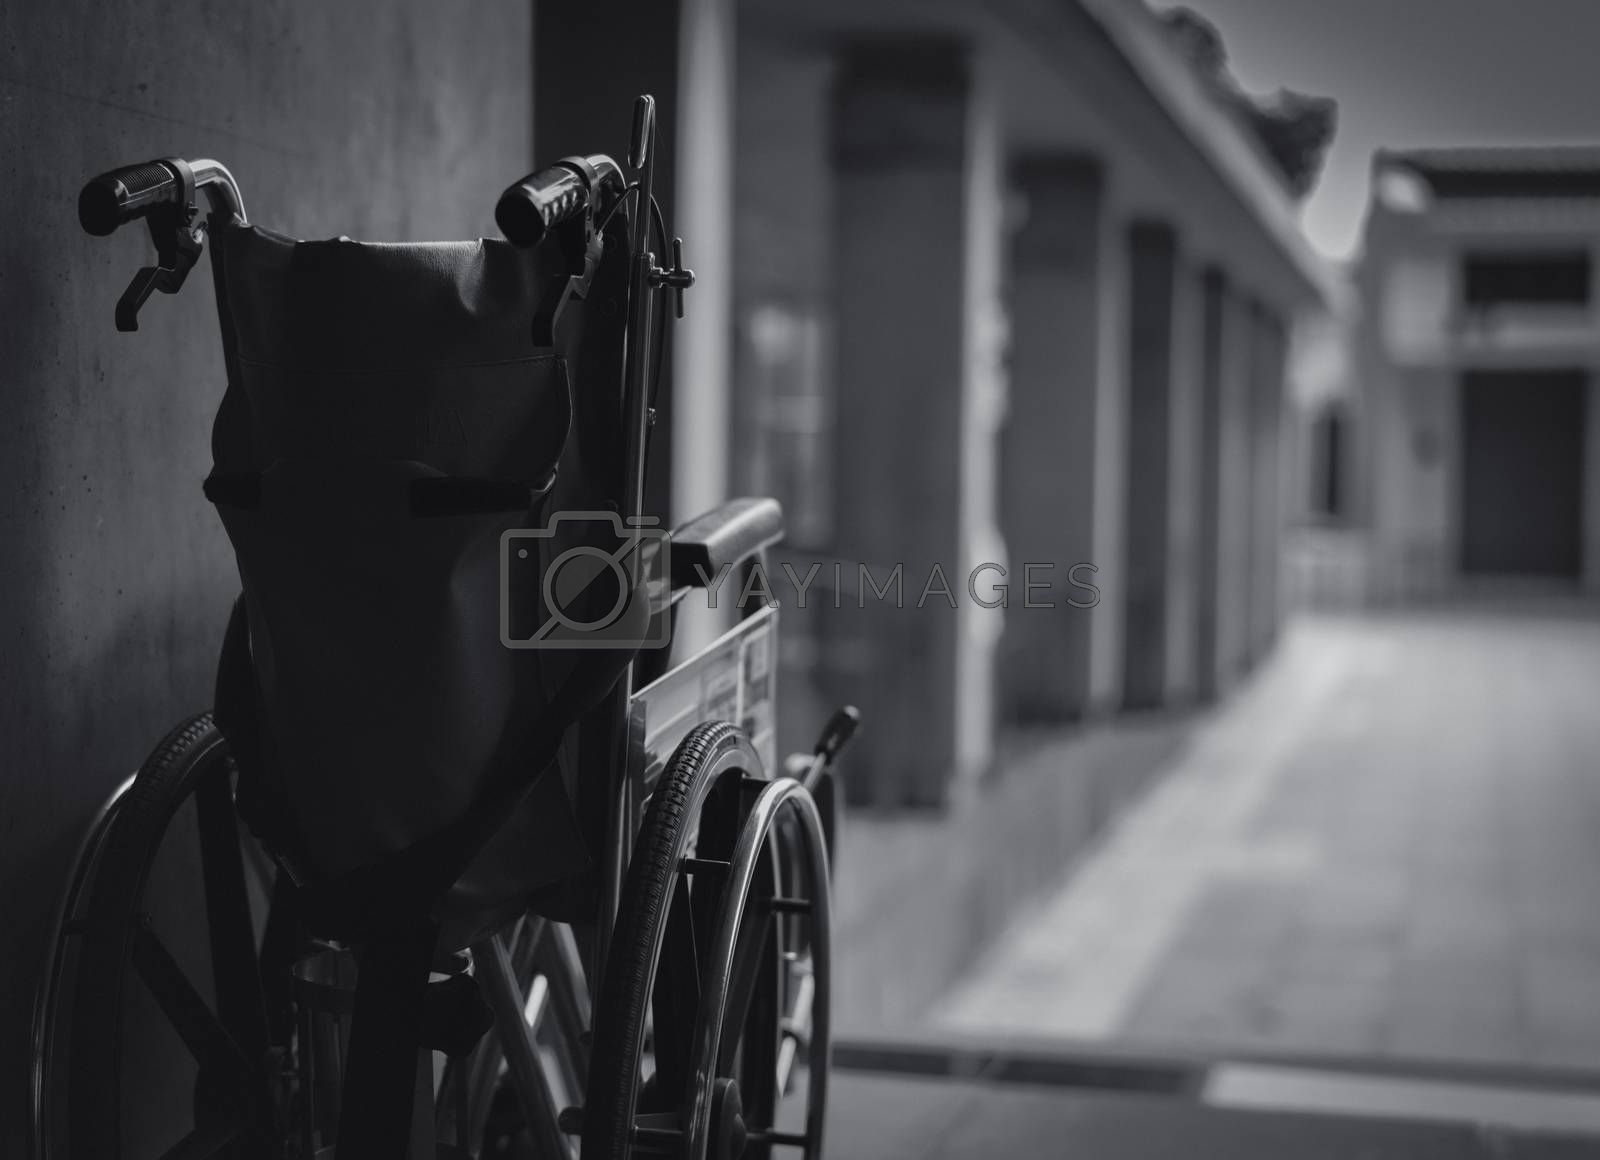 Wheelchair folded beside the wall. Sad news at the hospital concept. Depression with aging society. Lonely empty wheelchair. Medical equipment for service patient and assistant disabled elderly people